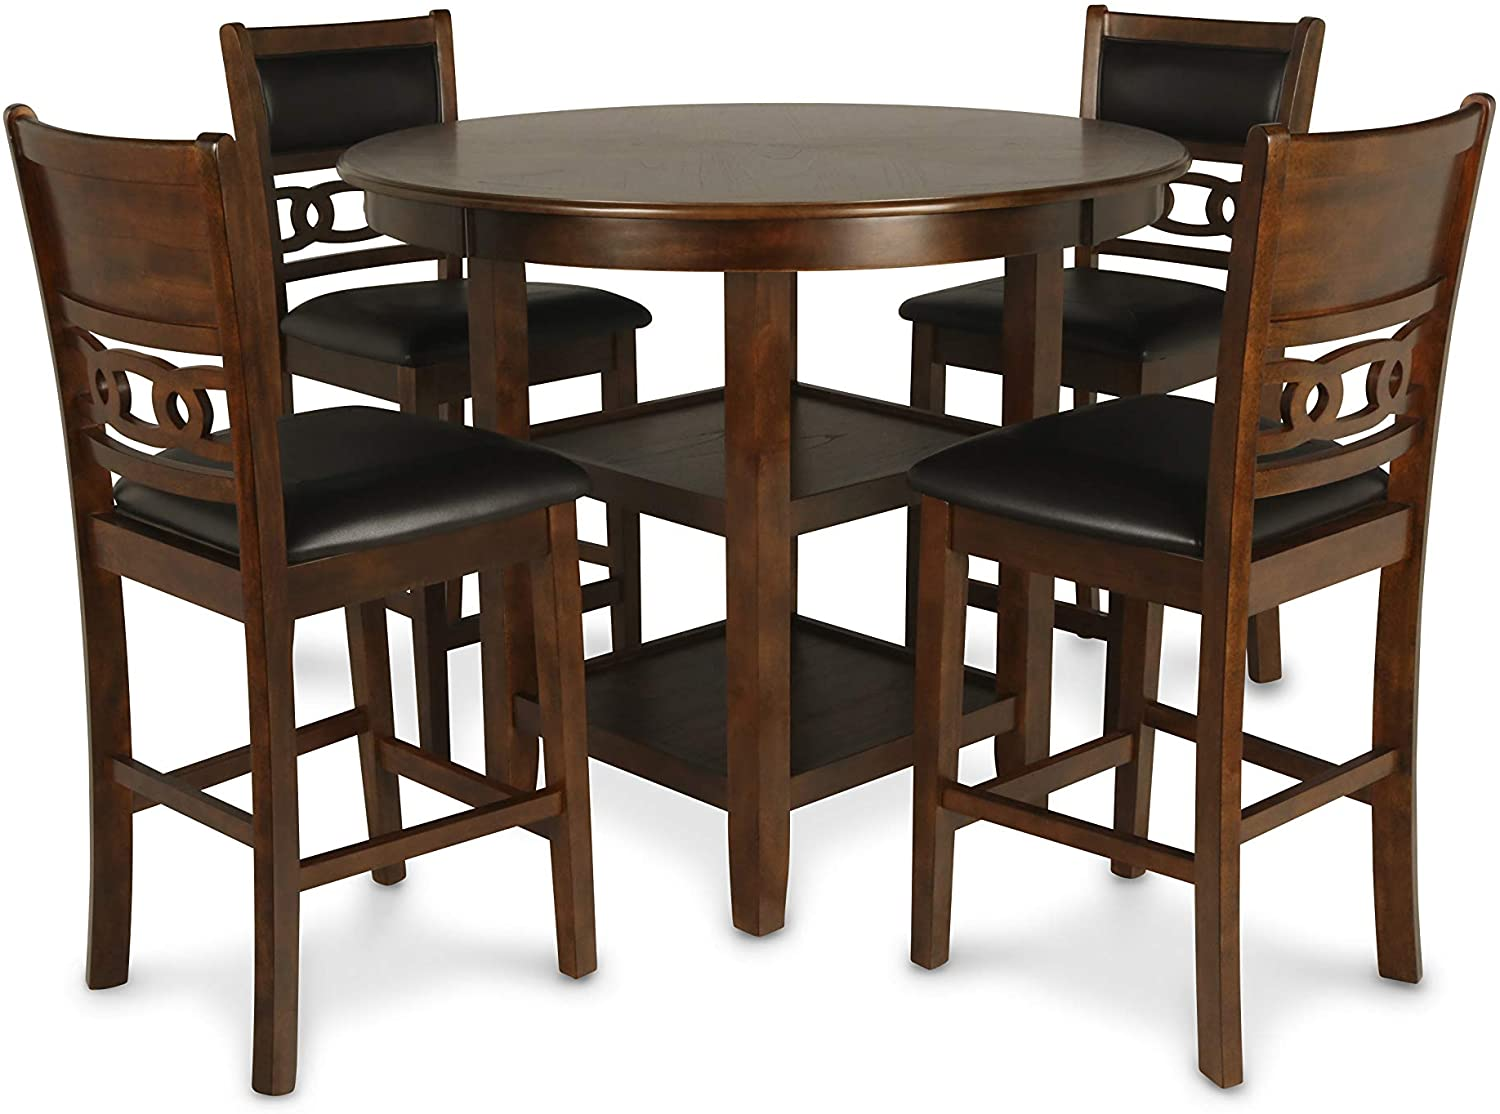 Top 13 Best Dining Set for Home 4